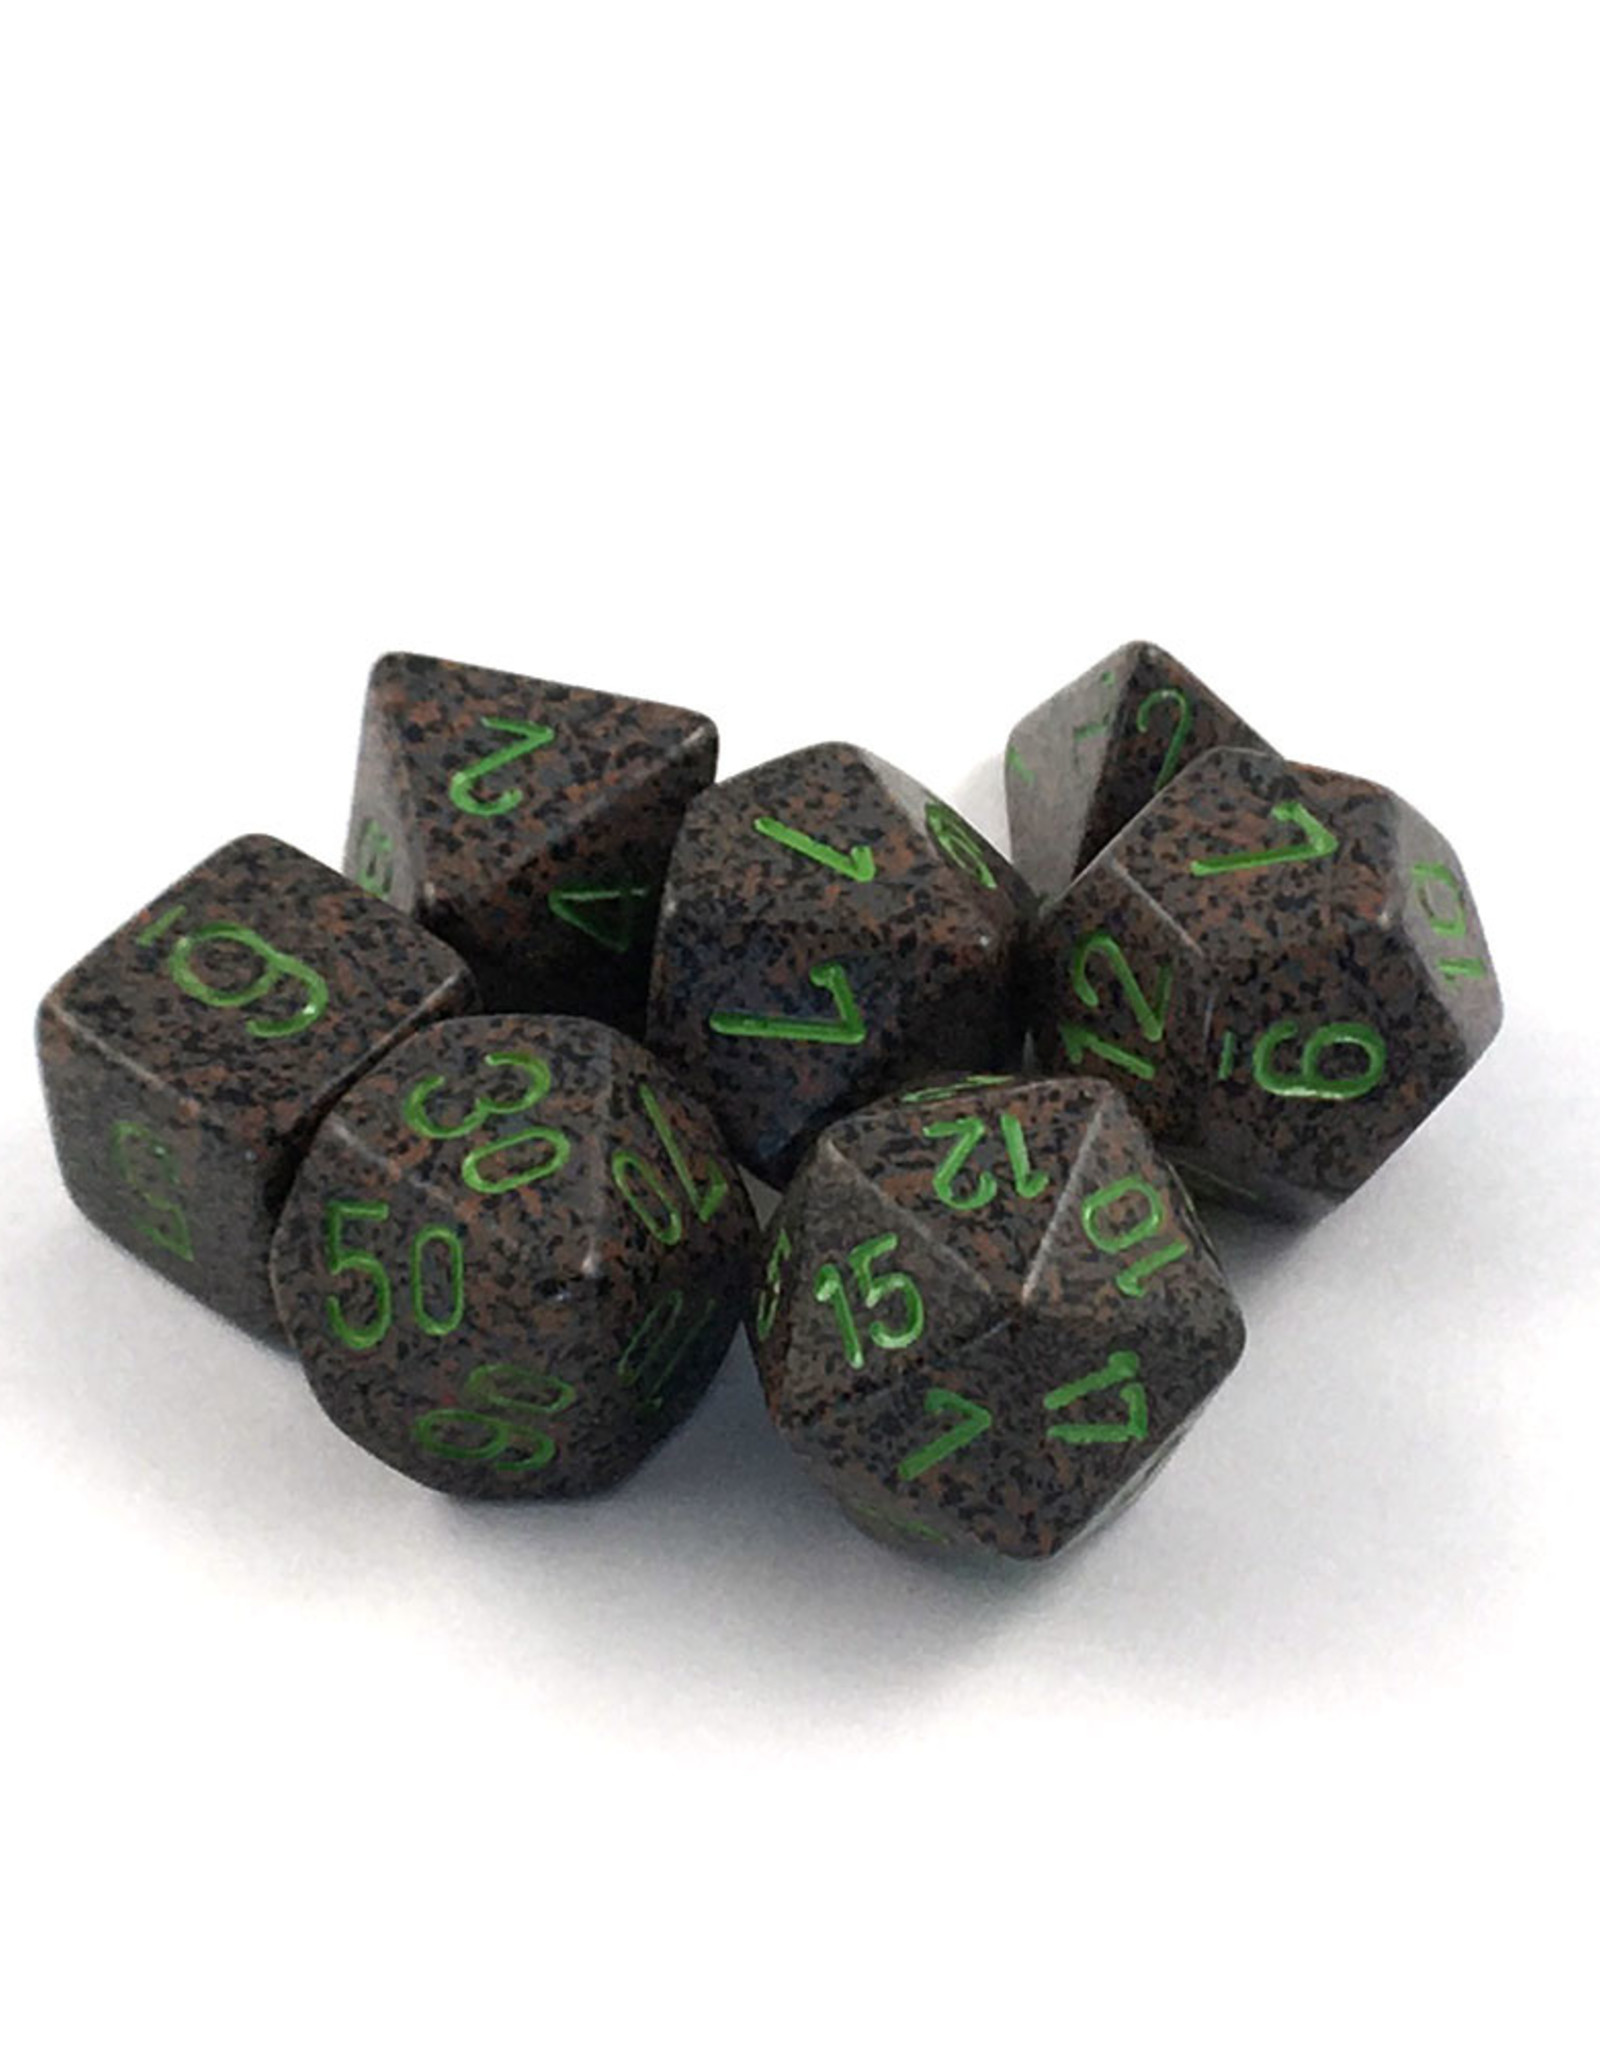 Chessex Chessex 7-Die set Speckled - Earth